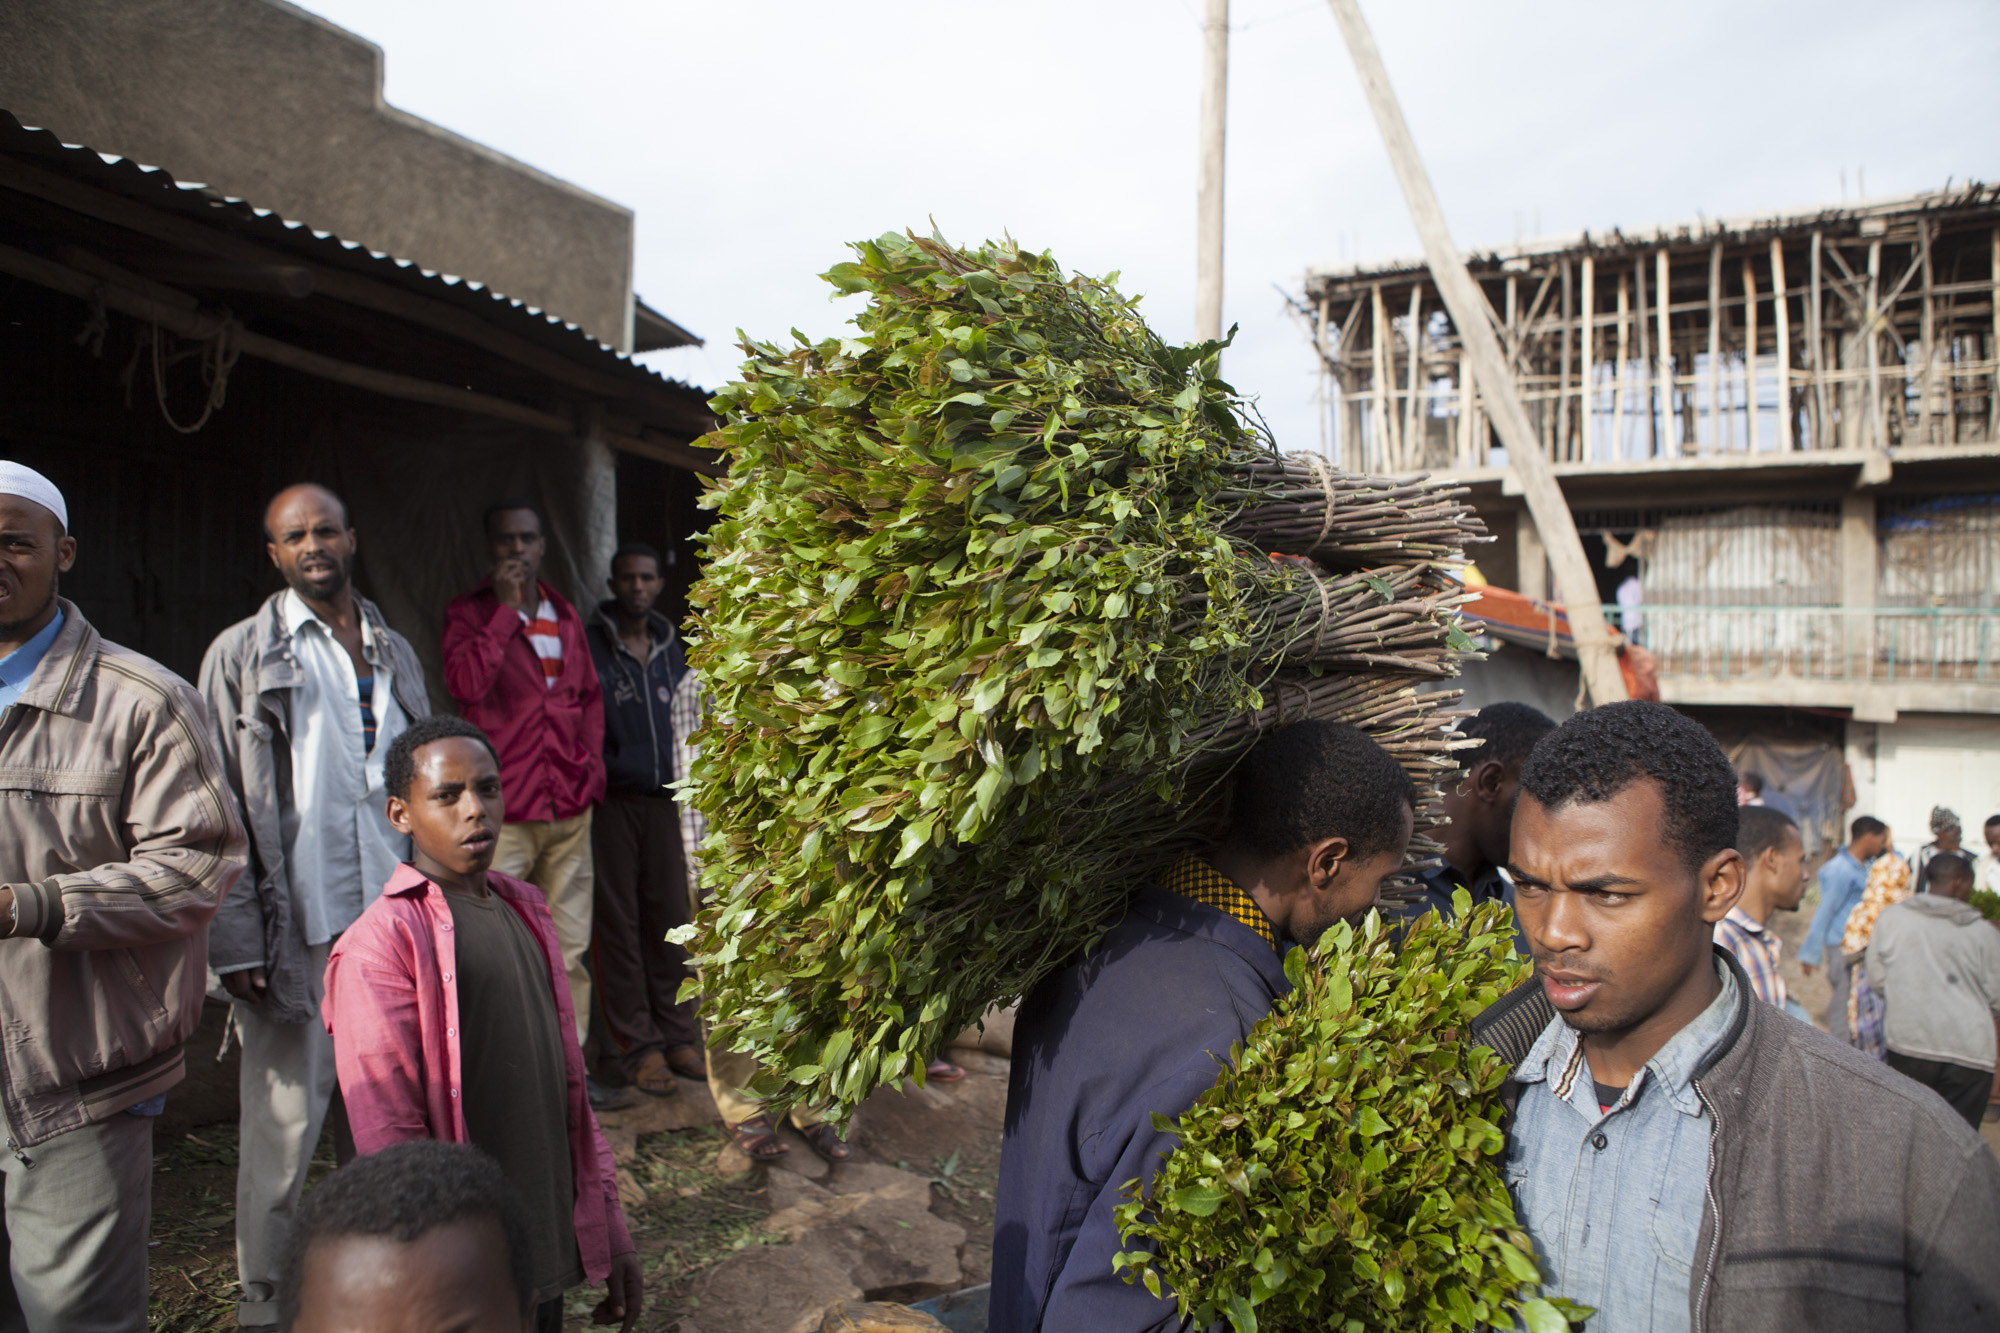 Men are pictured carrying fresh cut chat for sale in a market in Awaday, Ethiopia on 30 July 2014. Chat is the fourth largest export in Ethiopia, earning of $270 million USD annually.